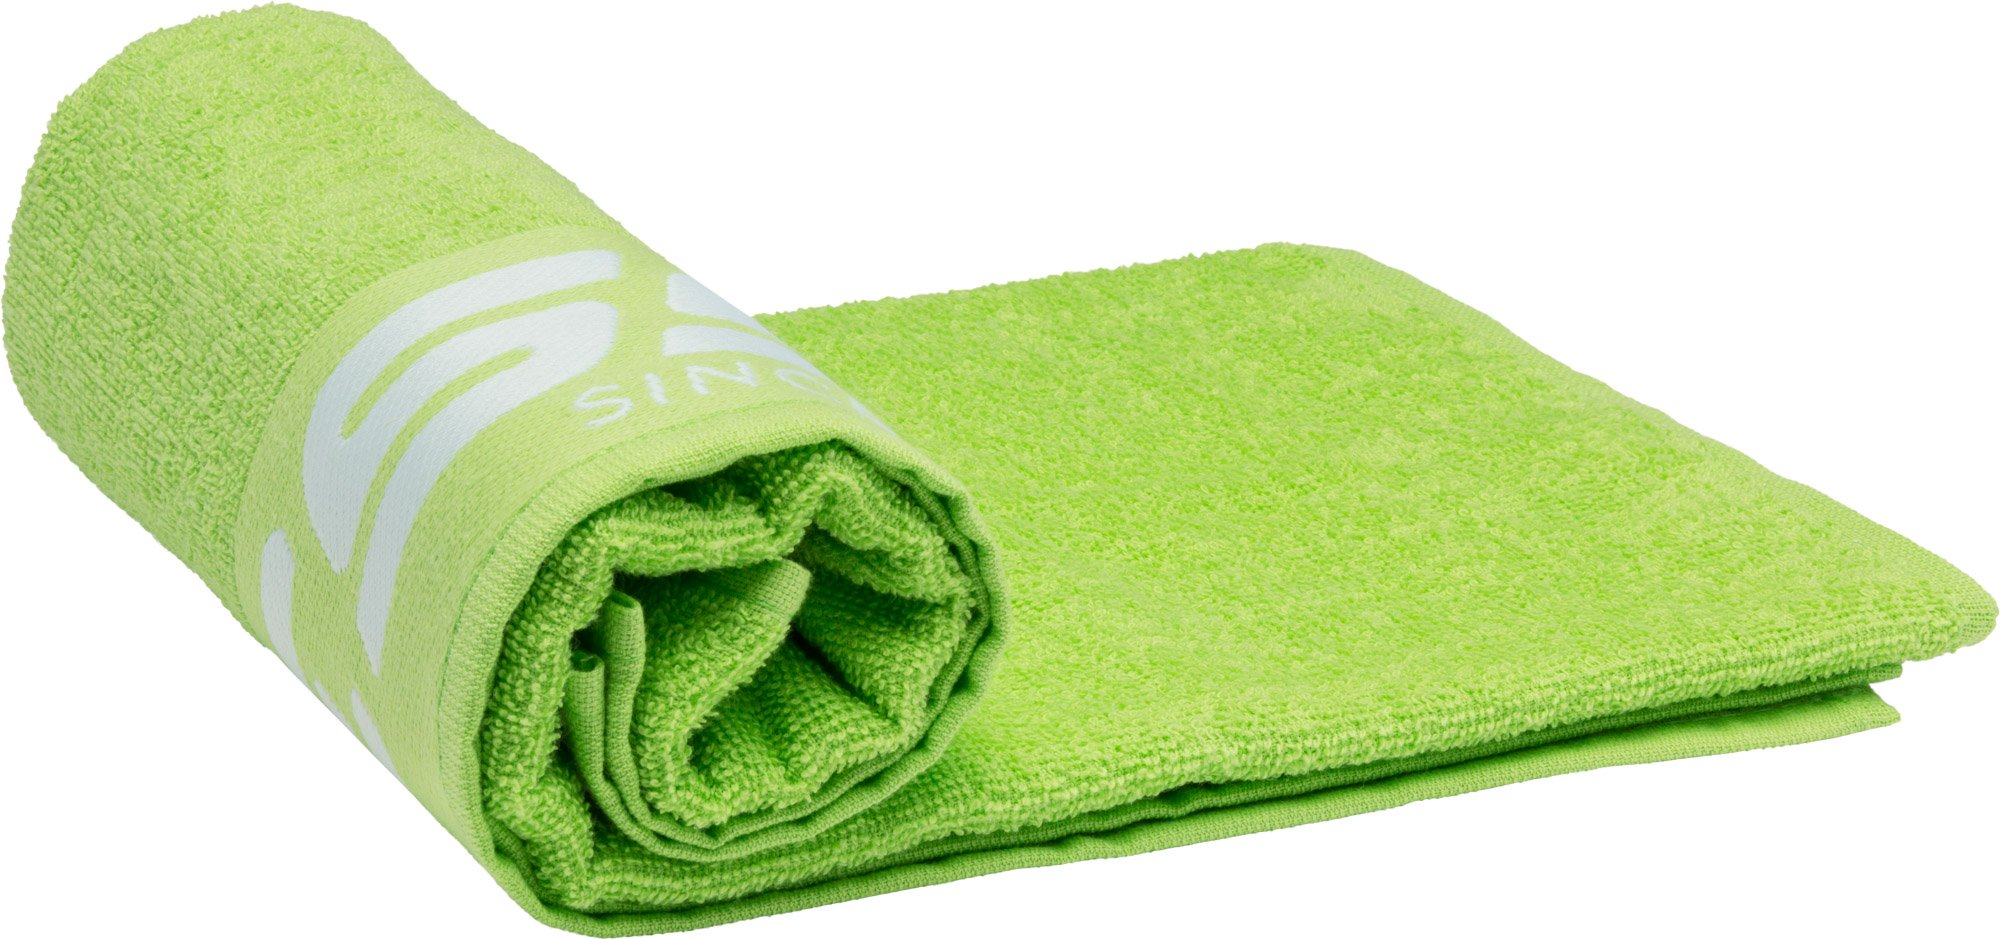 Cressi Sport Towel Toalla Deportiva, Unisex Adulto, Lime, 50x120cm product image